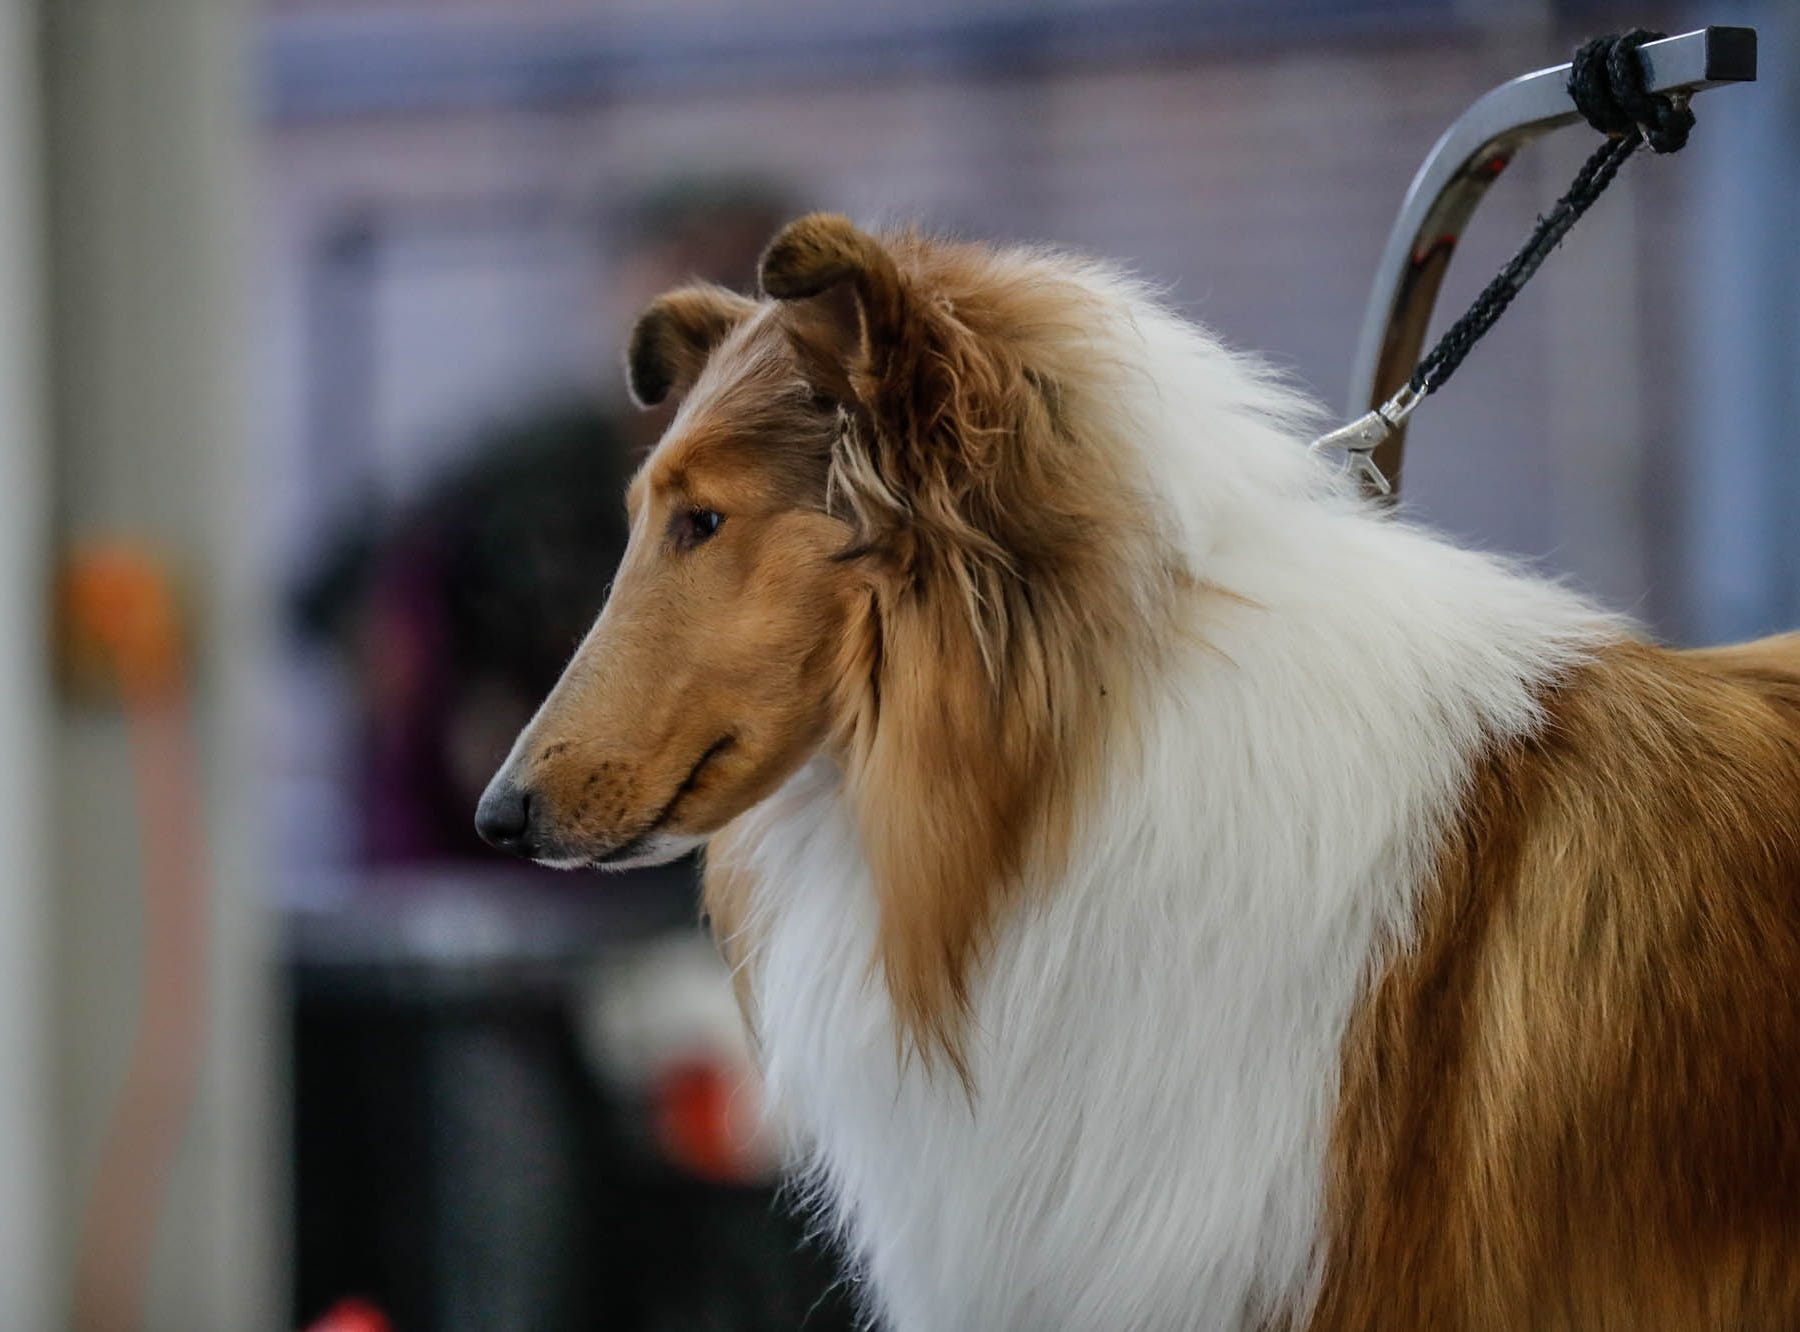 Glory, a rough coat collie belonging to George and Tammy Jacobs, is groomed during the Indy Winter Classic All Breed Dog Show, held at the Indiana State Fairgrounds on Sunday, Feb. 10, 2019.